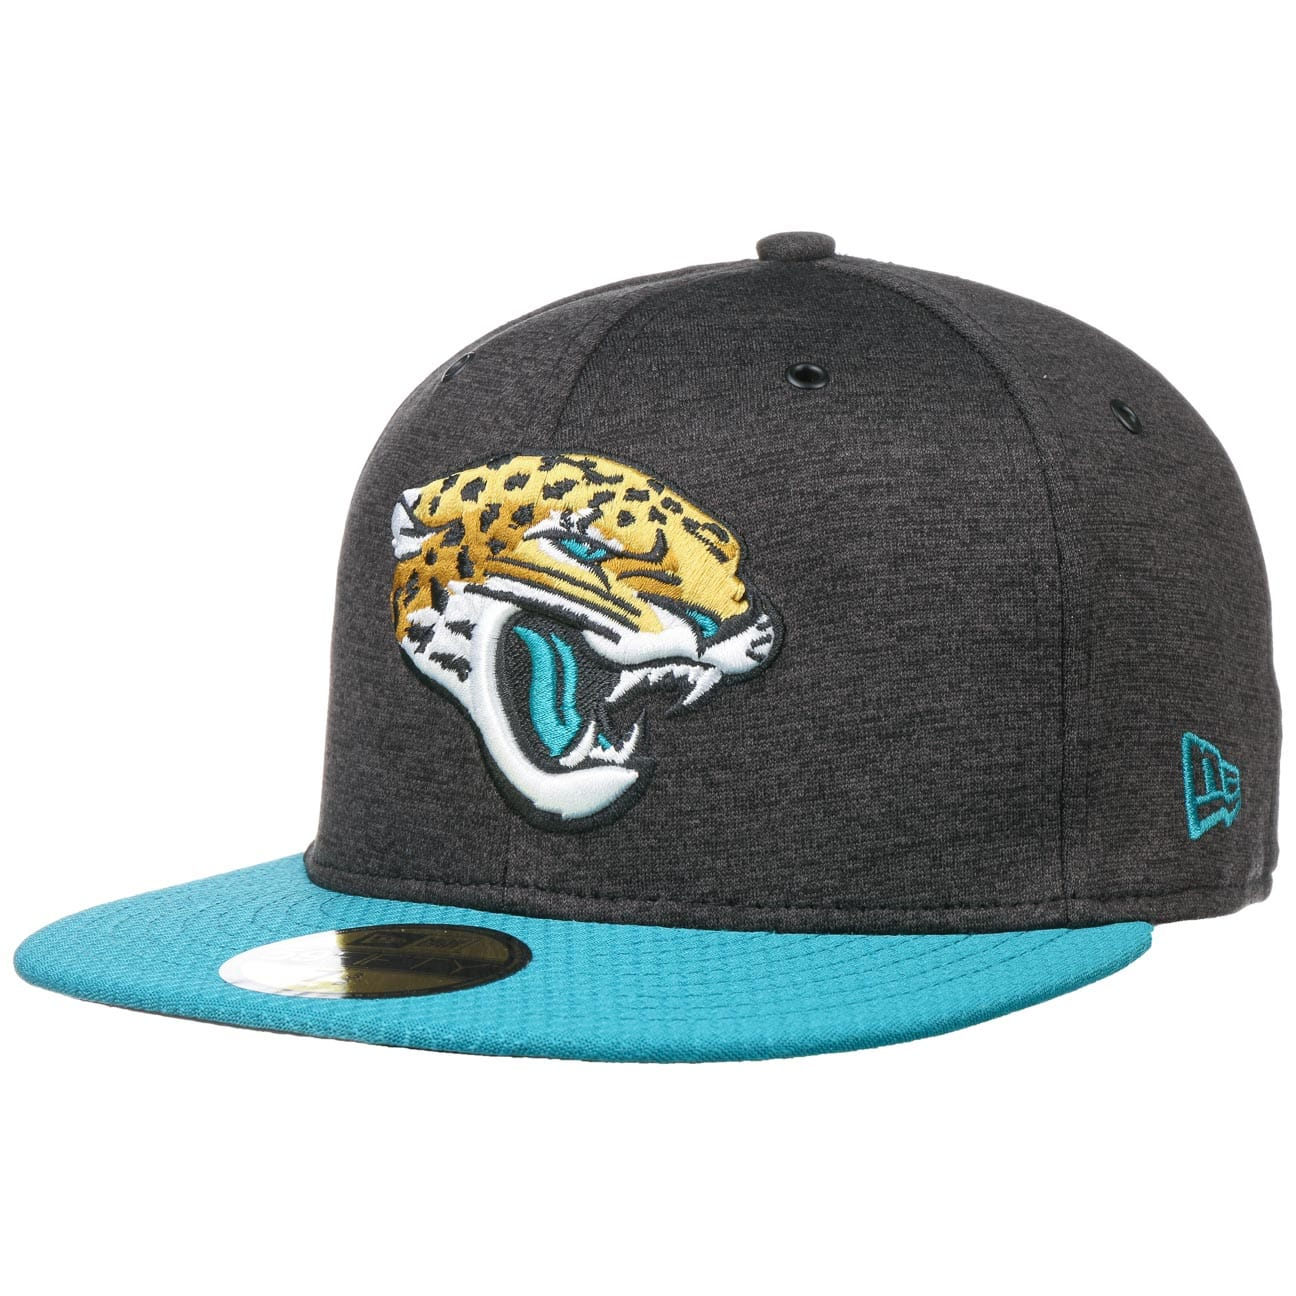 59fifty-on-field-18-jaguars-cap-by-new-era-basecap